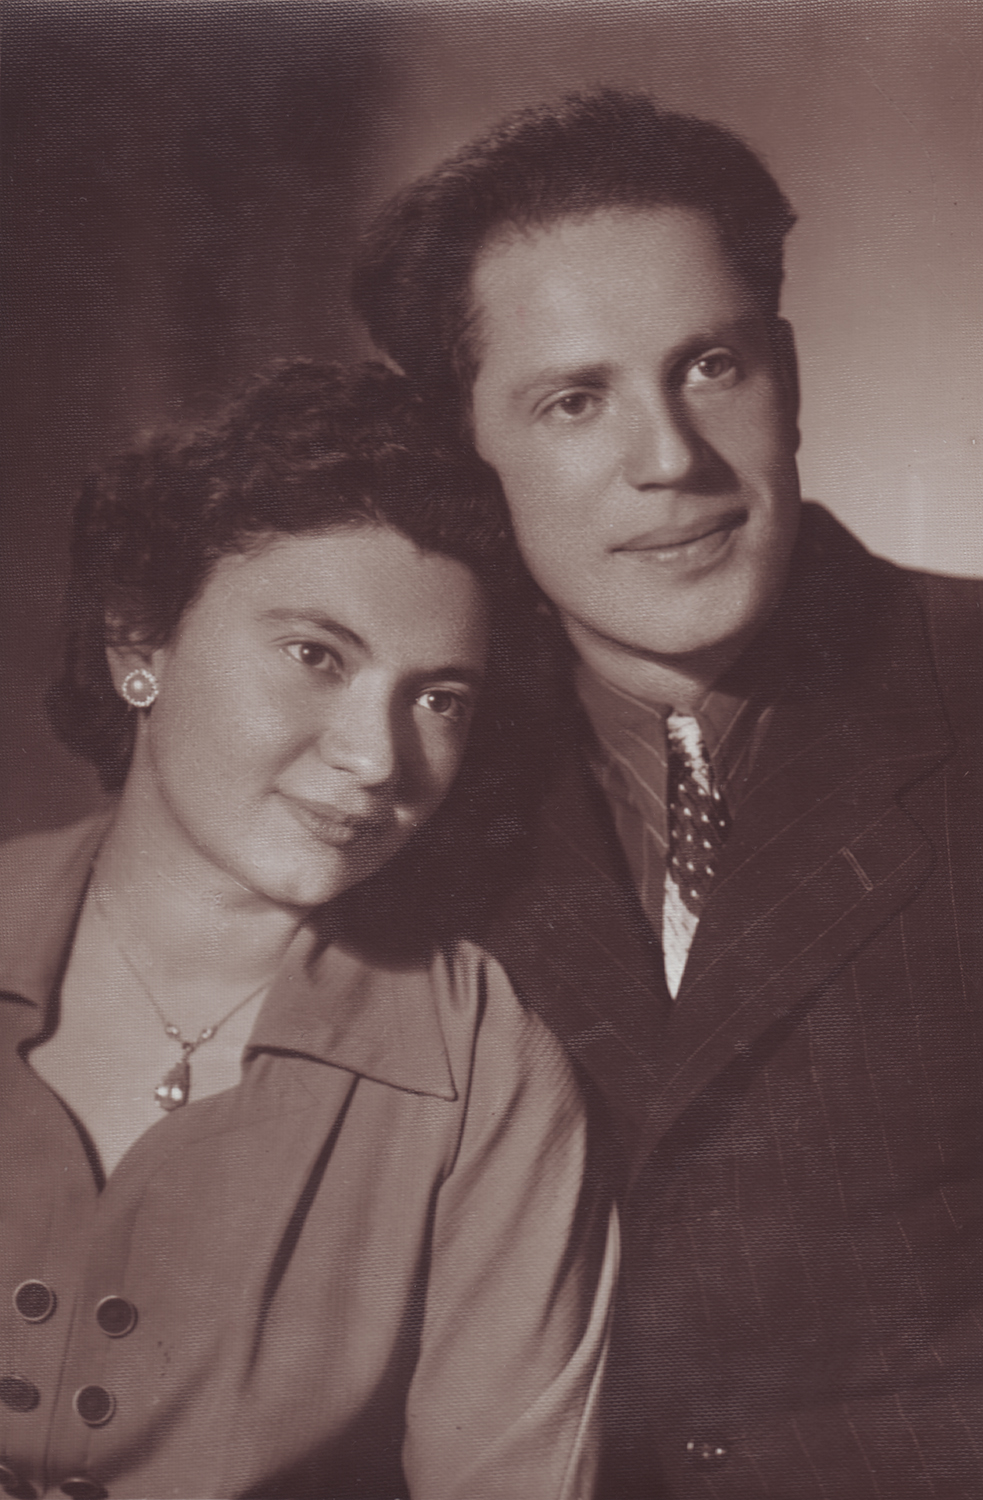 Vladimir and his wife, Nina, on their wedding day. Moscow, 1954